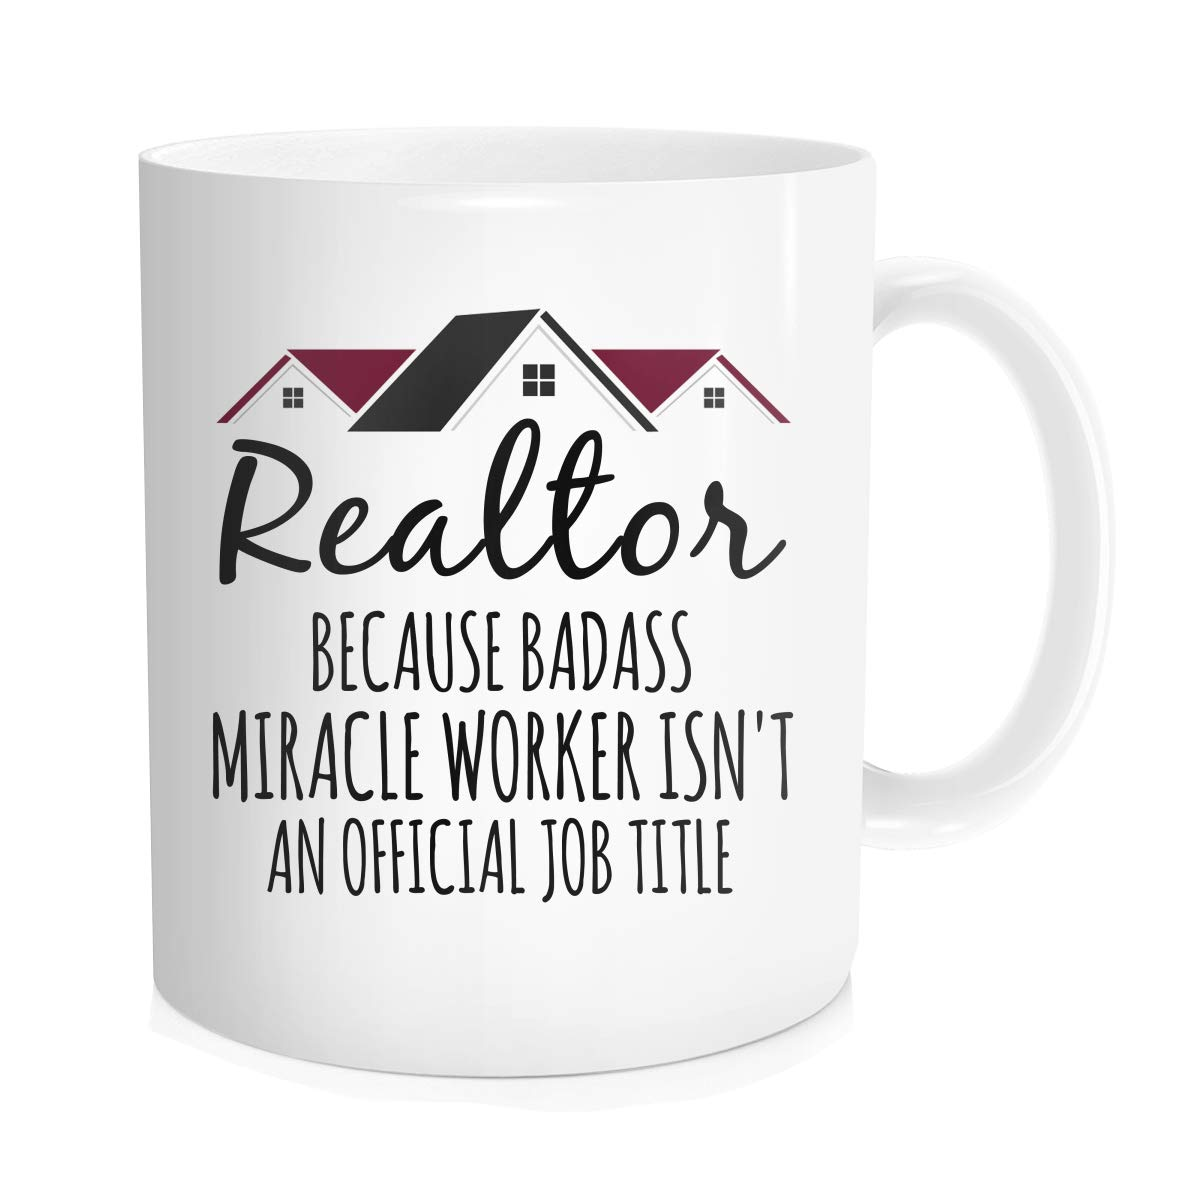 Waldeal Realtor Coffee Mug, Realtor Miracle Worker Job Title Real Estate Agent Novelty Tea Cup, Gift Idea For Men Women Co-workers, White Fine Bone Ceramic 11 OZ